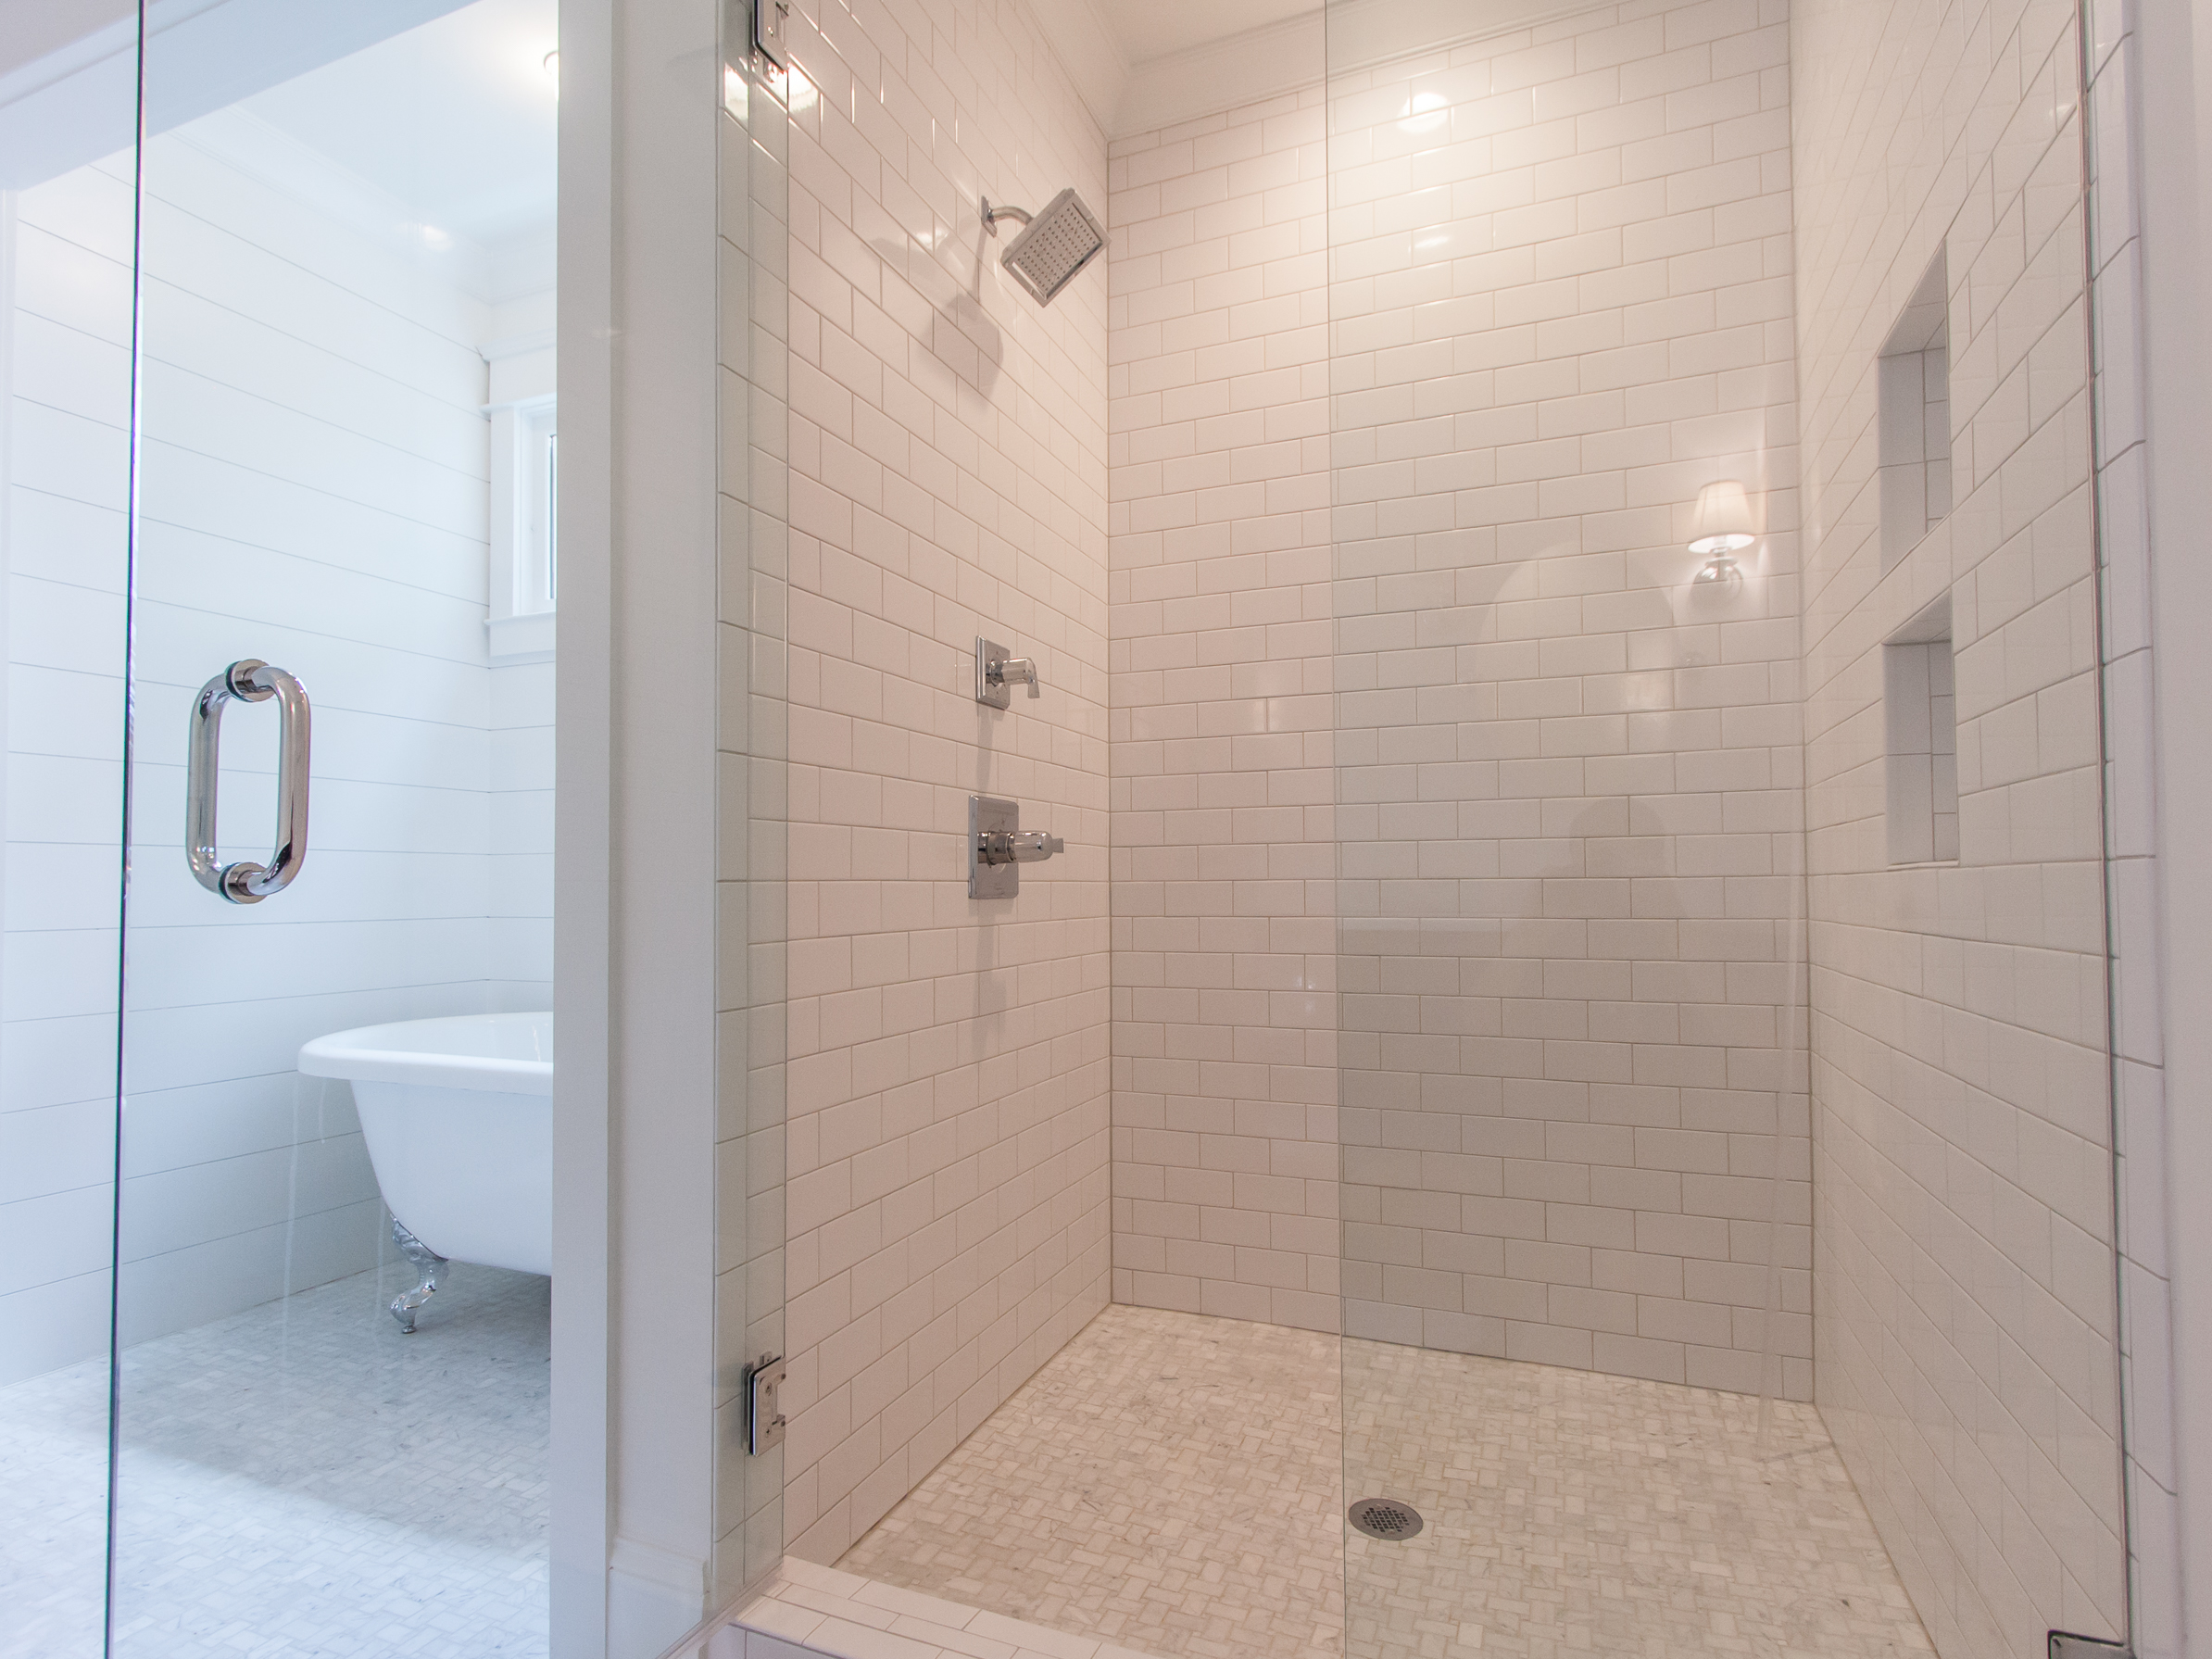 116 5th Ave Master bath shower.jpg